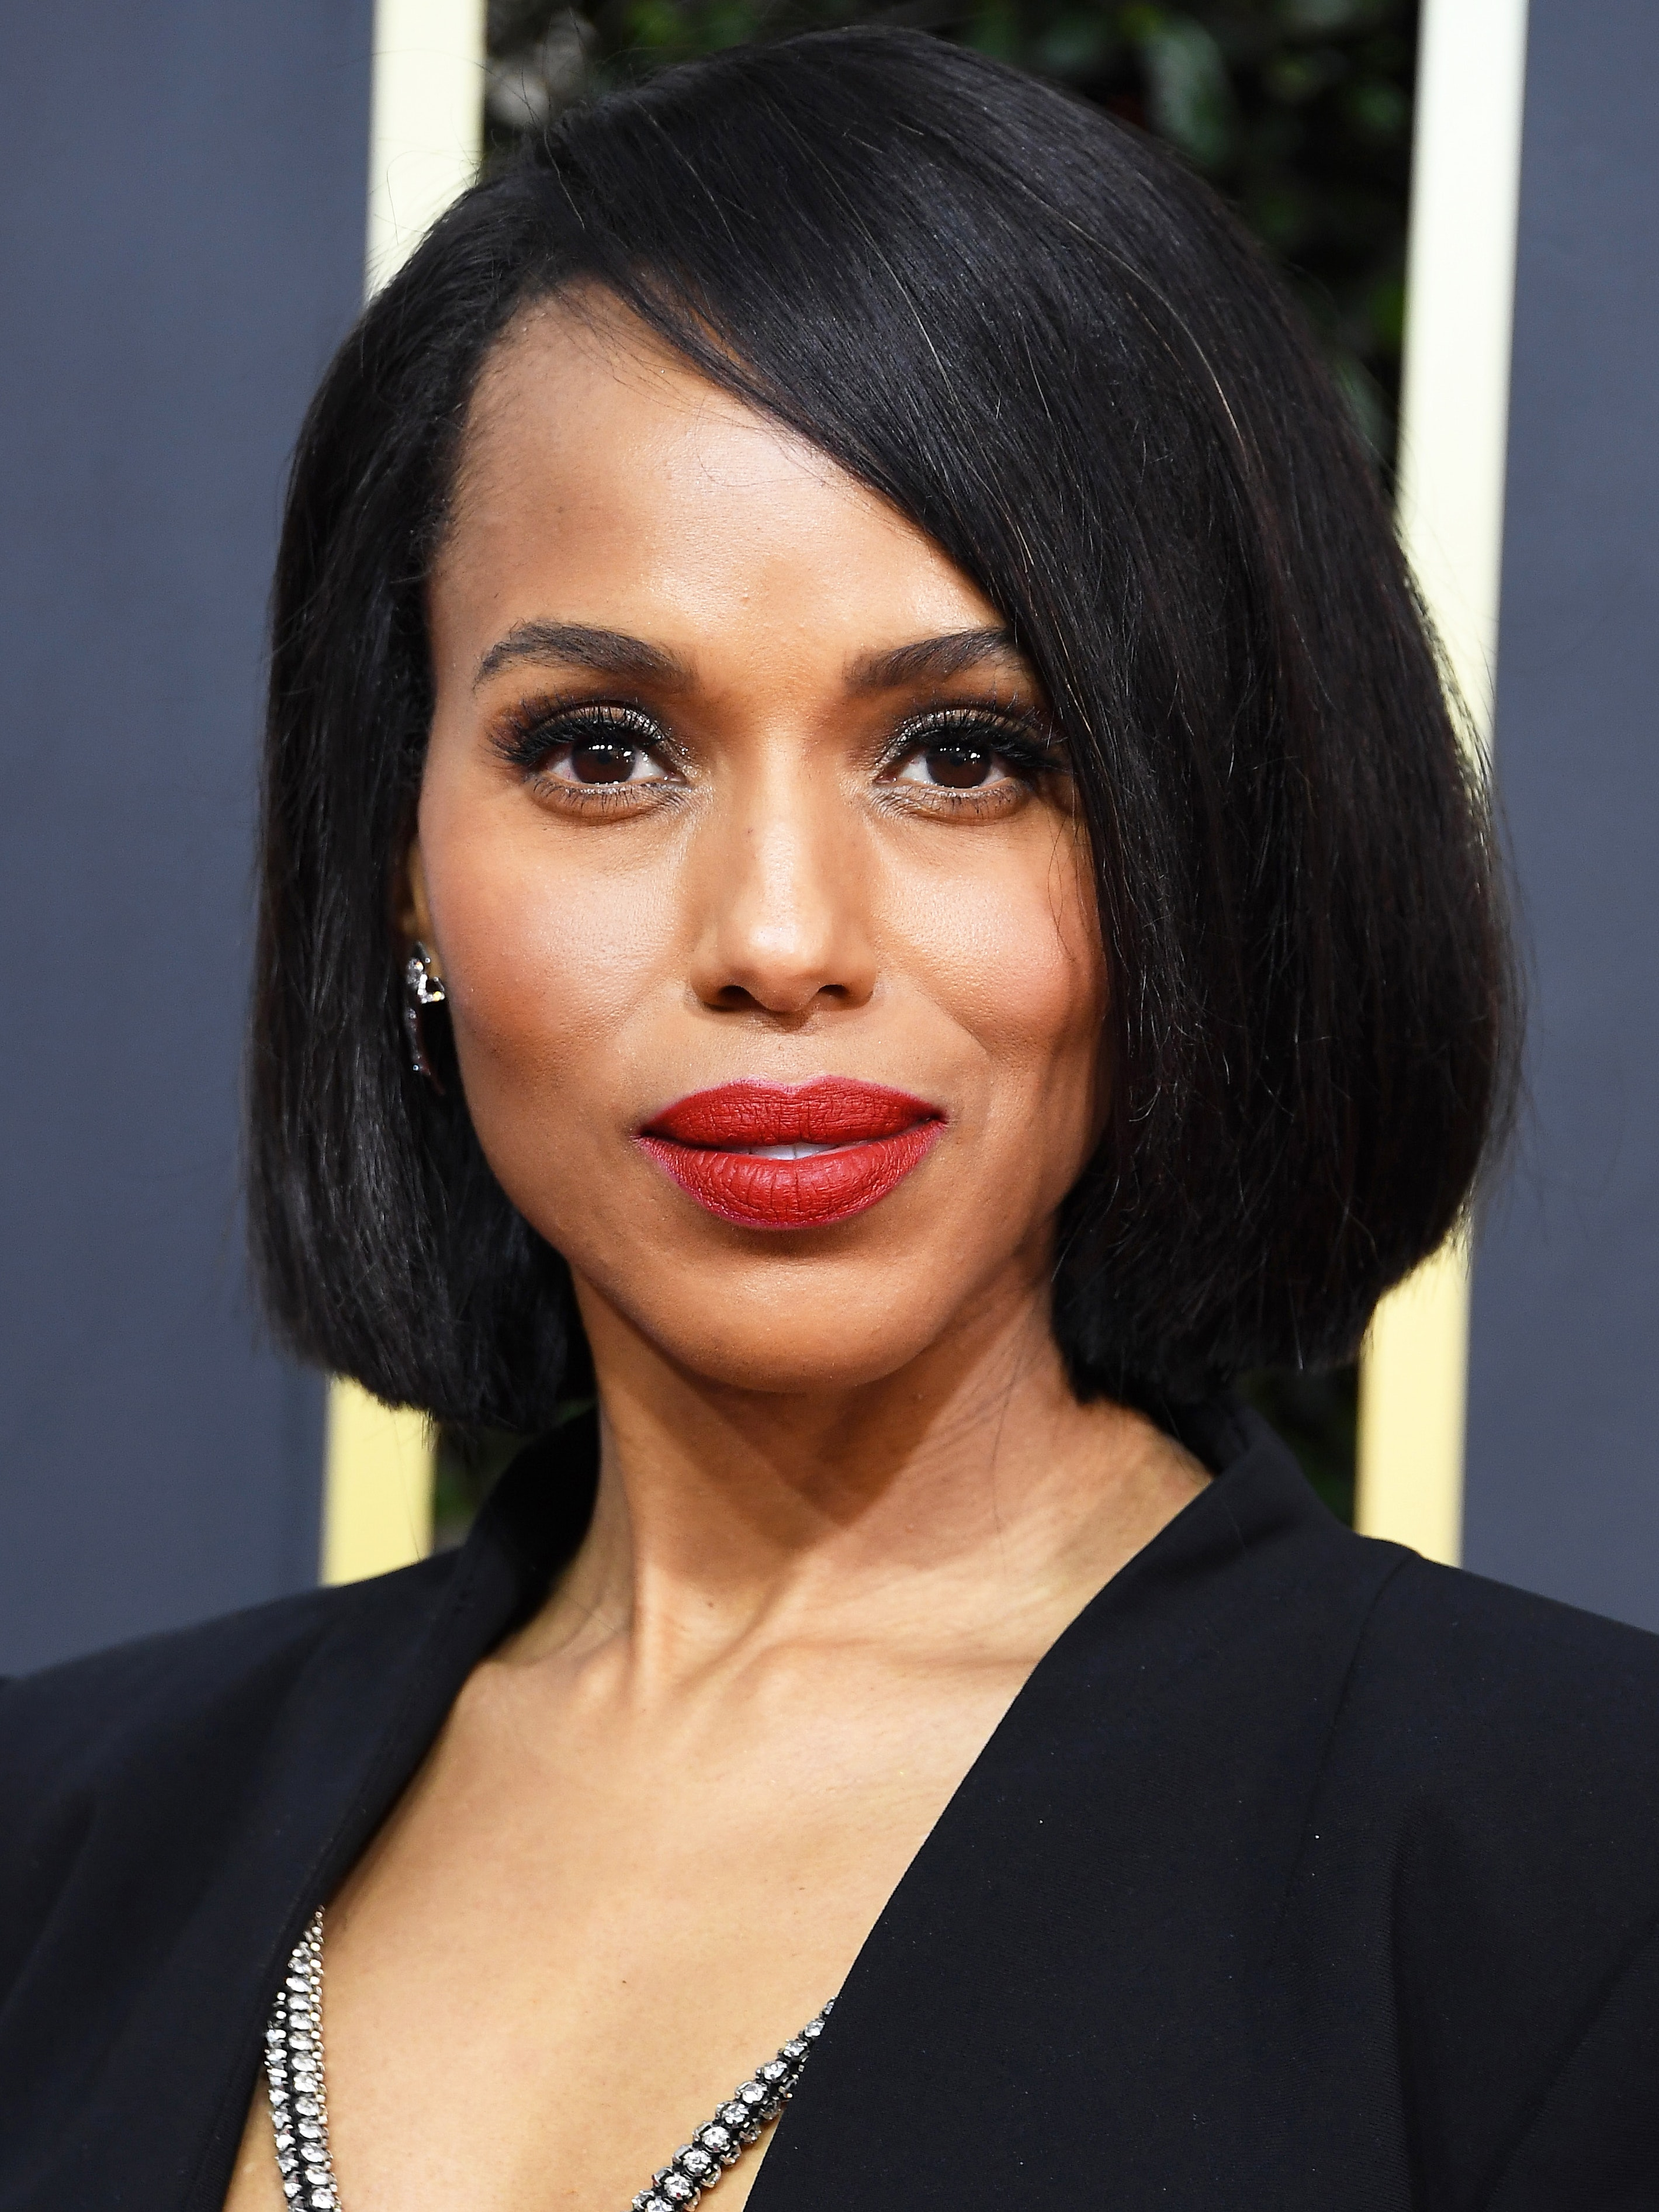 Kerry Washington Golden Globes beauty look 2020